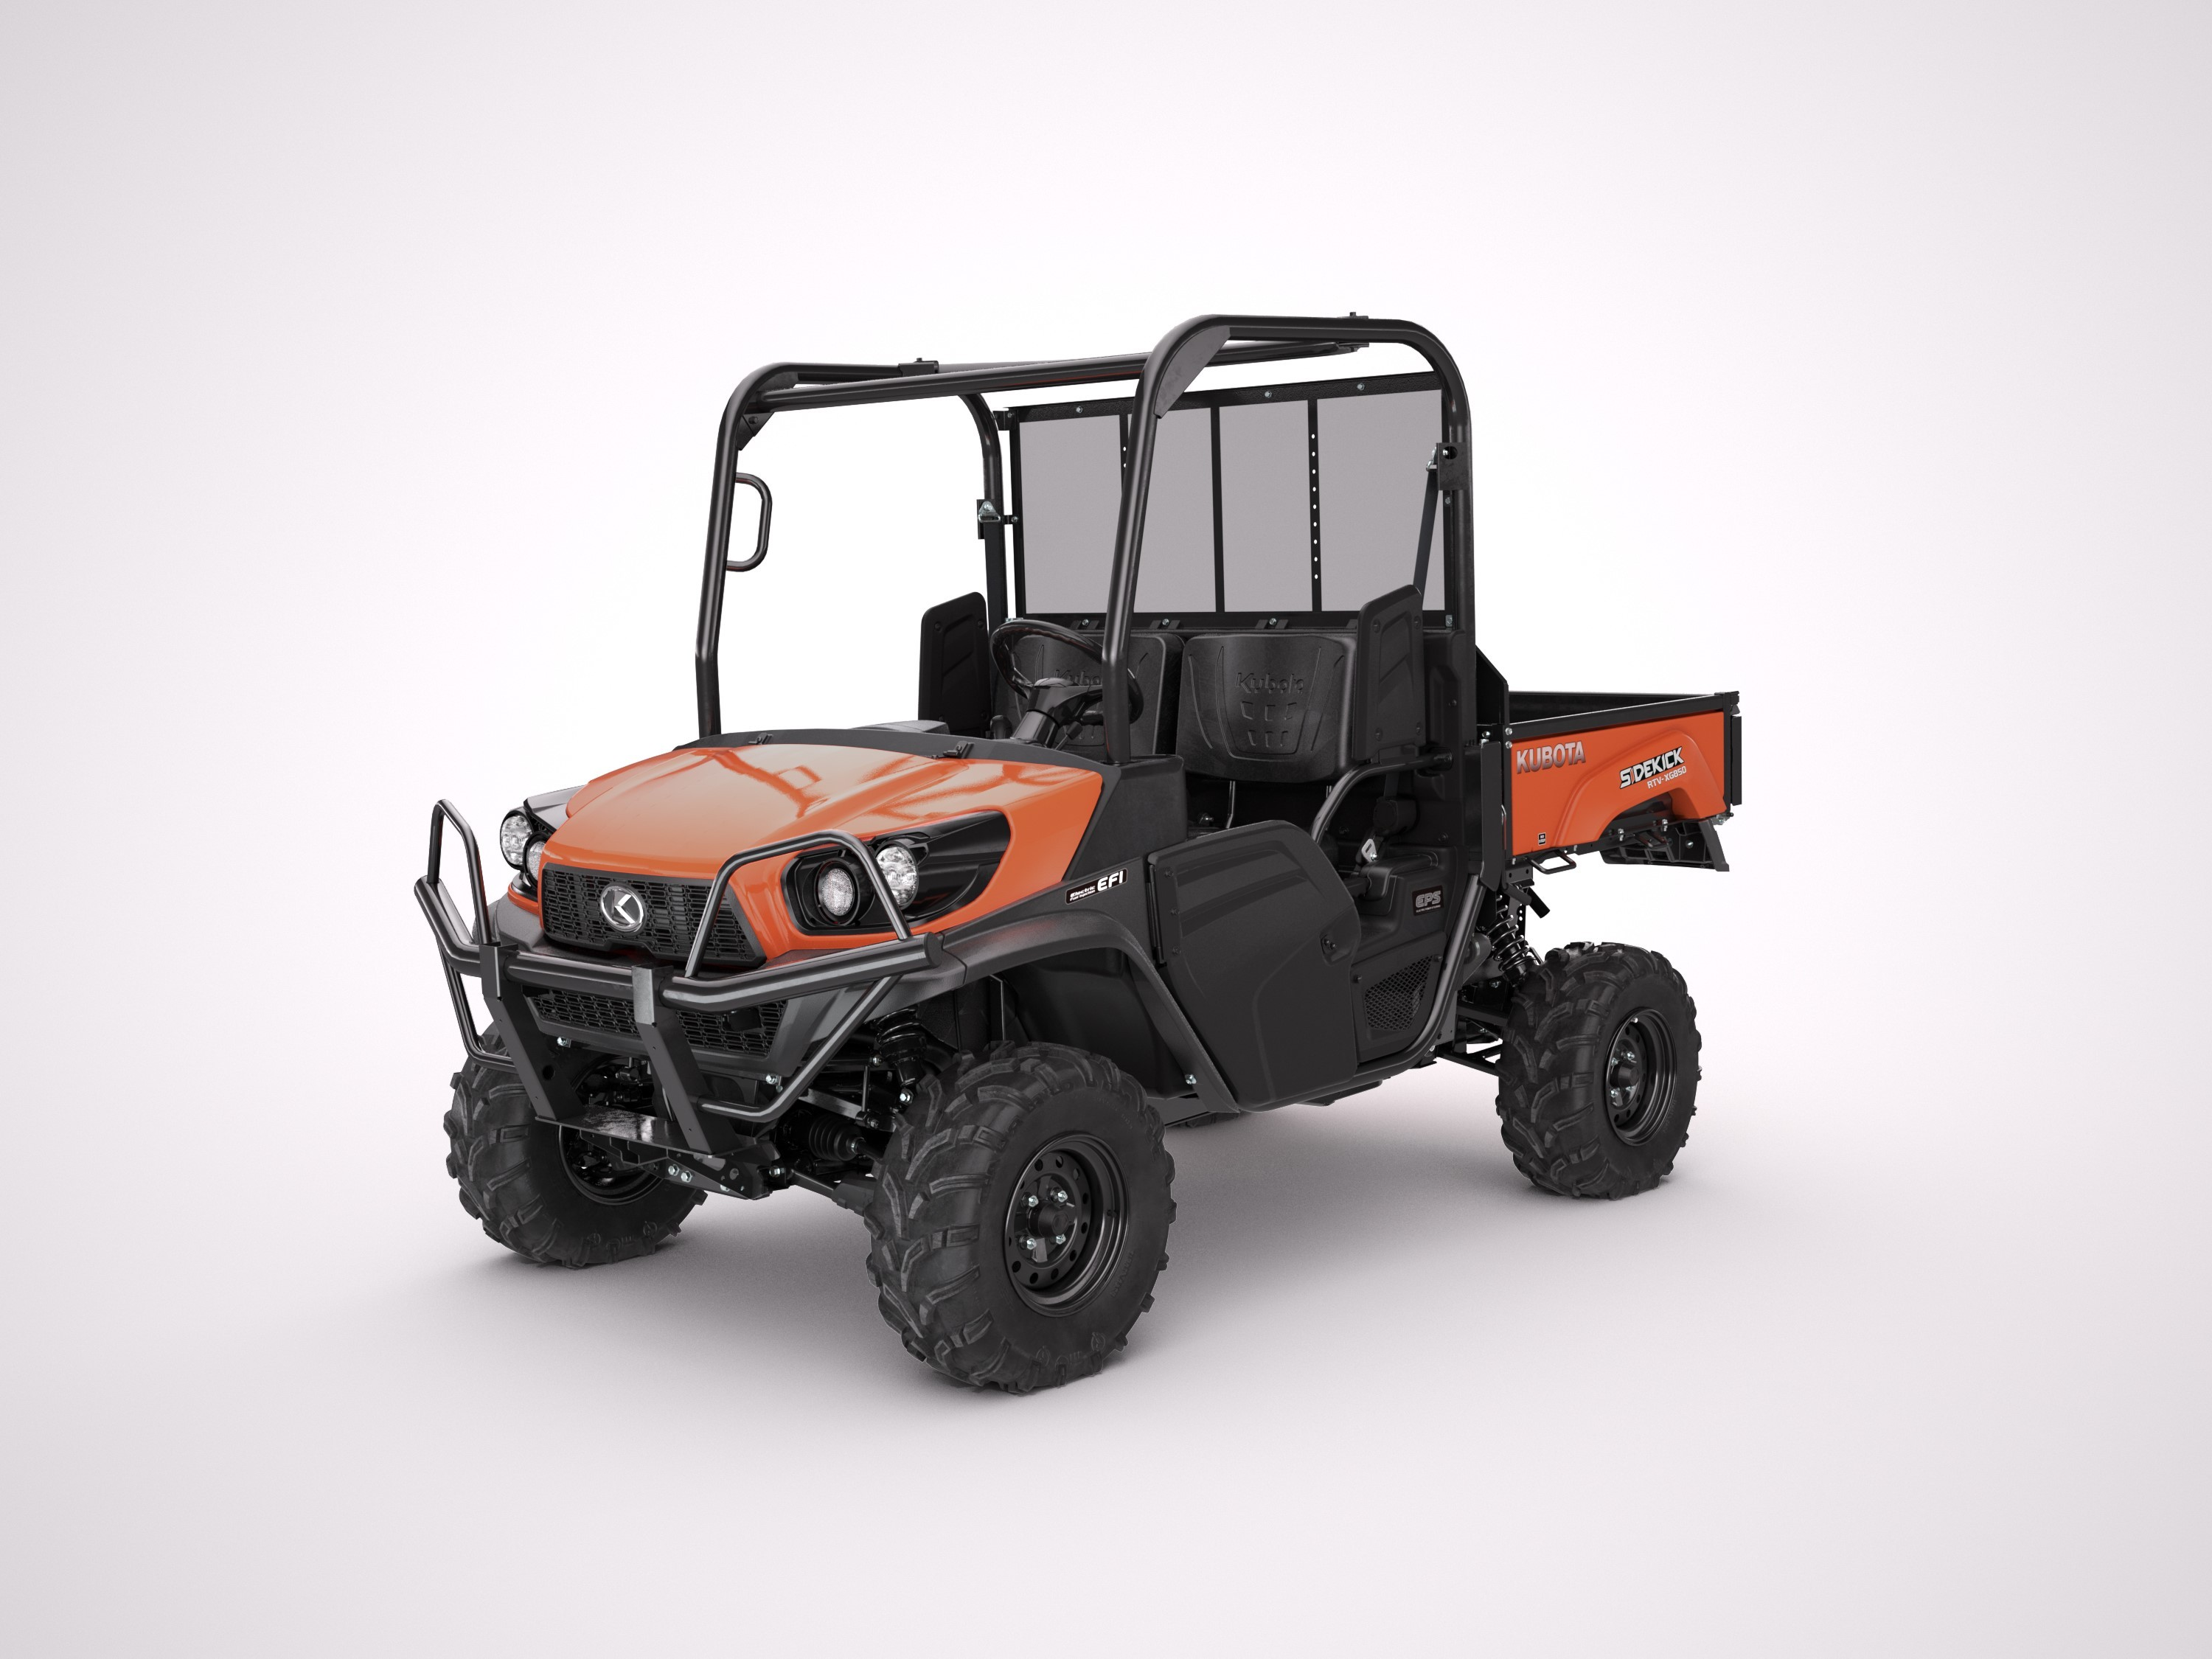 The Newest Addition To The Kubota Rtv Family Arriving In 2018